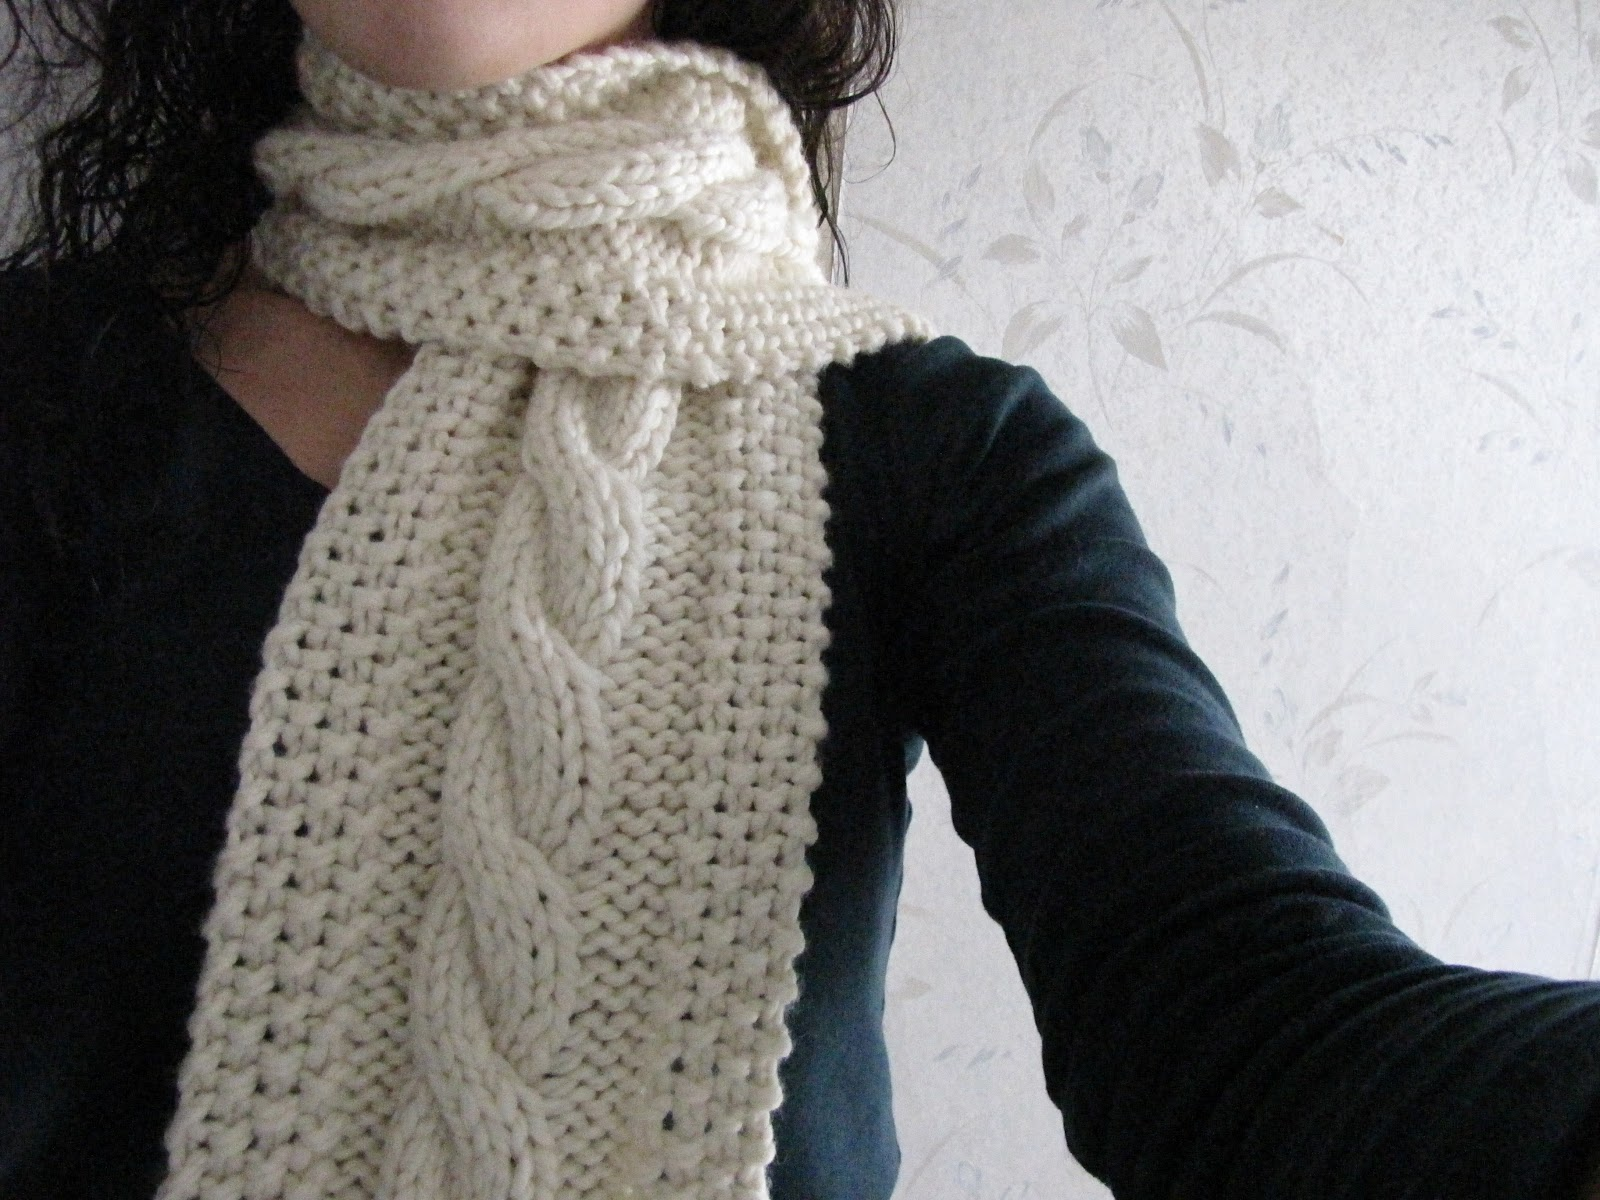 Knitting Patterns Scarf Free : Cozy Wooly Cabled Scarf